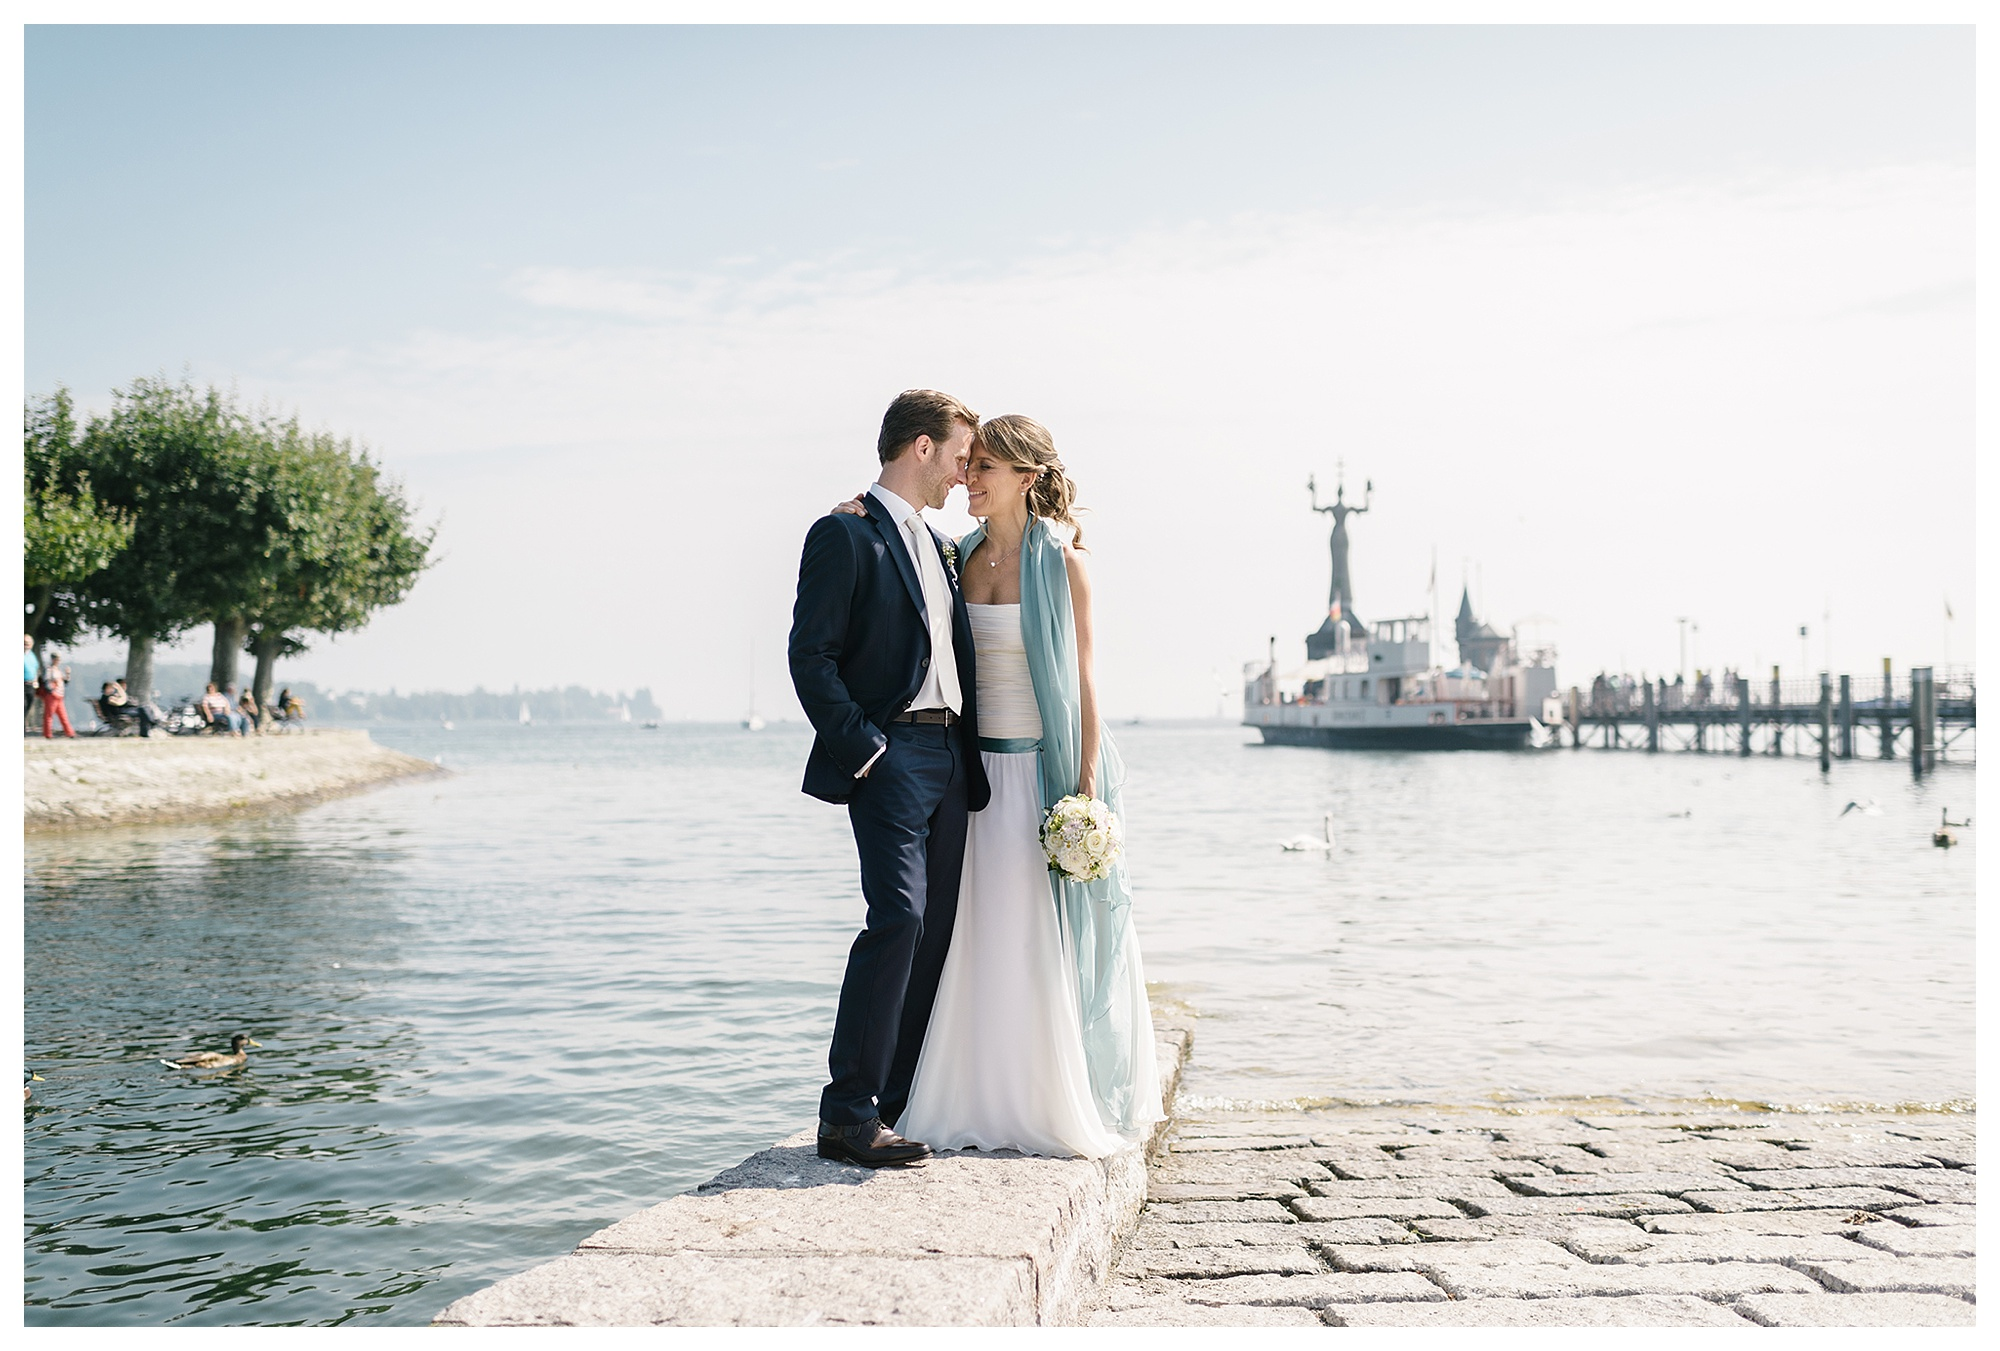 Fotograf Konstanz - Hochzeitsreportage Konstanz Raphael Nicole Elmar Feuerbacher Photography Hochzeit Portrait 21 - Wedding in Constance at Lake of Constance  - 57 -